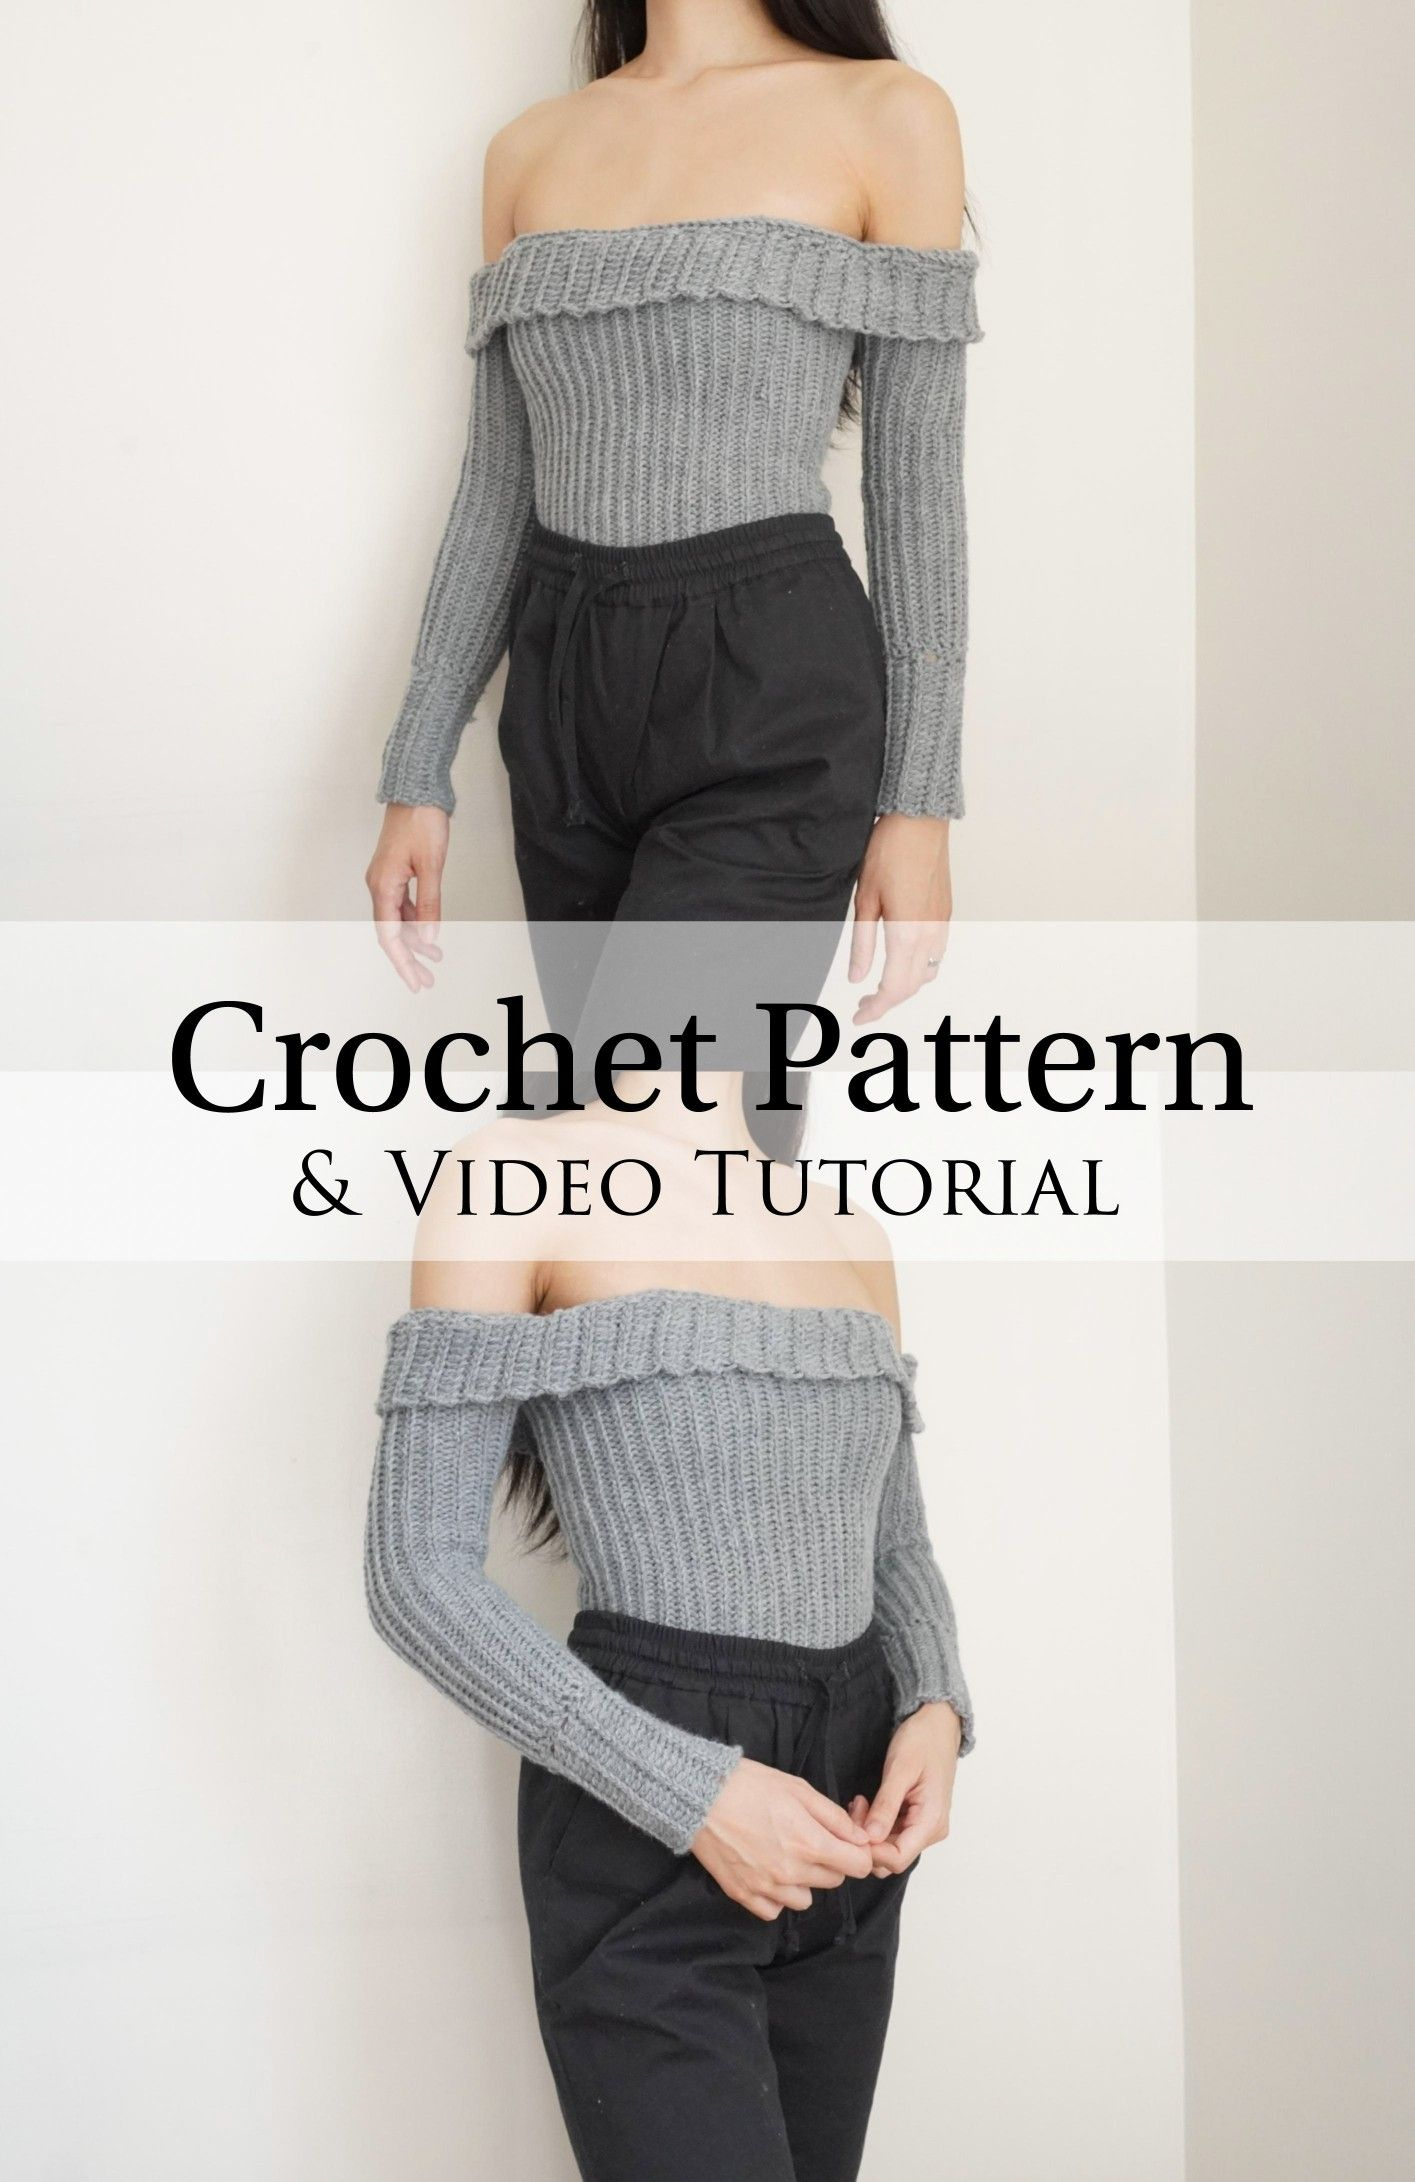 Crochet Pattern & Video Tutorial -   17 diy Clothes sweater ideas